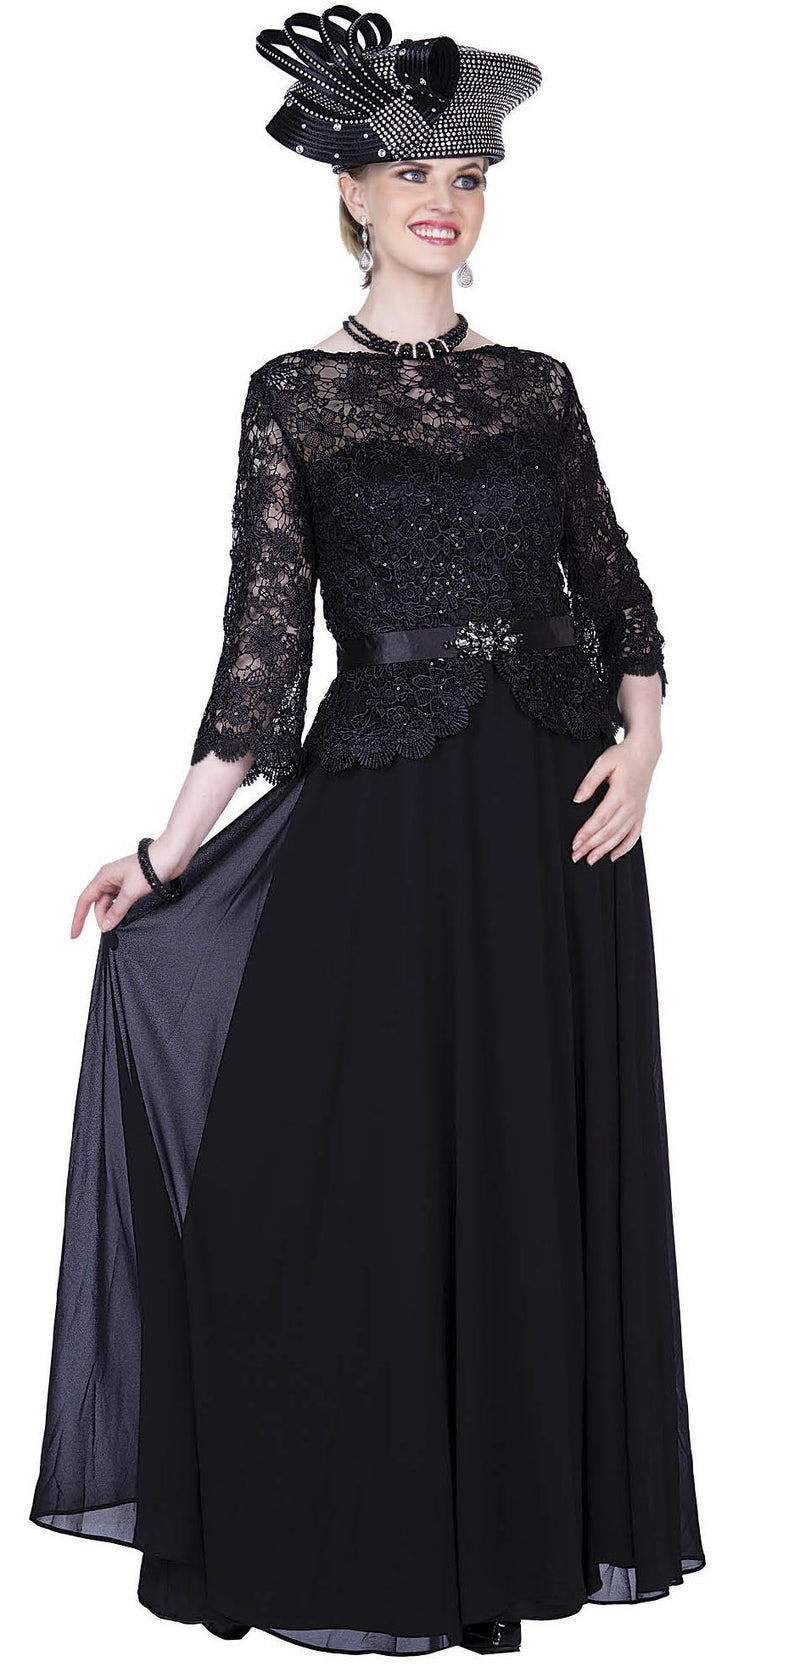 Elite Champagne Dress 5361-Black - Church Suits For Less